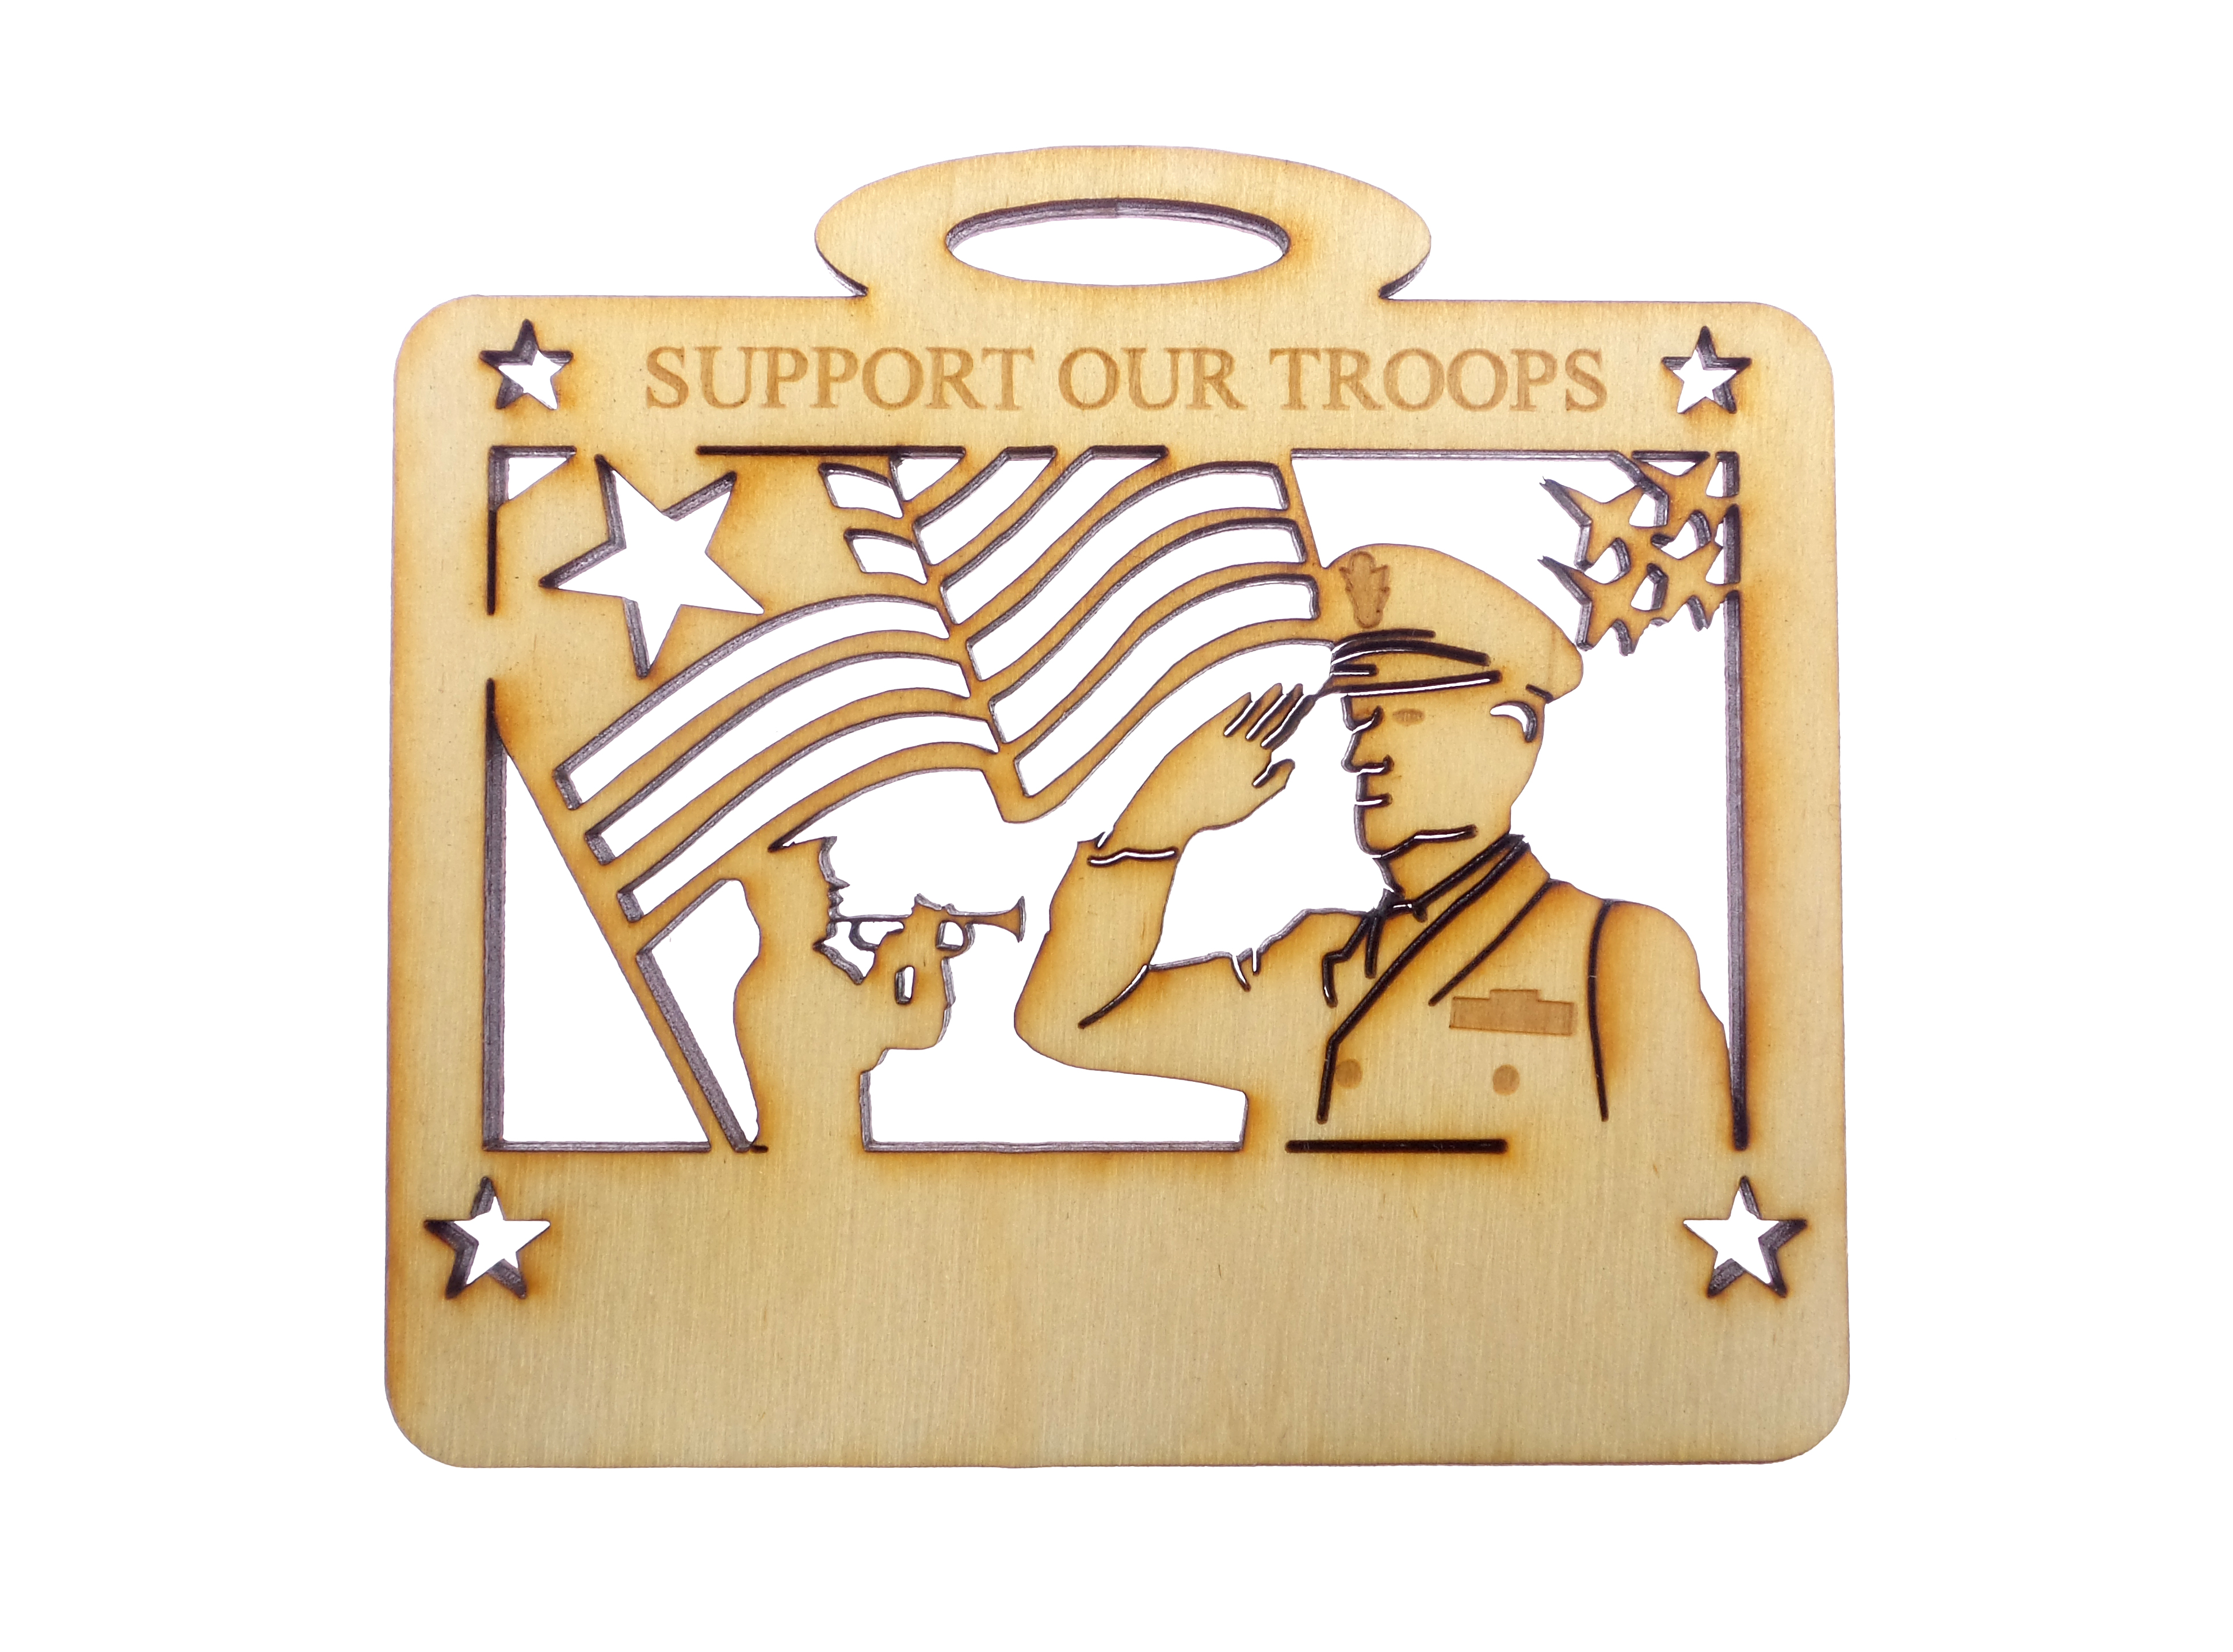 Personalized Support Our Troops Gifts